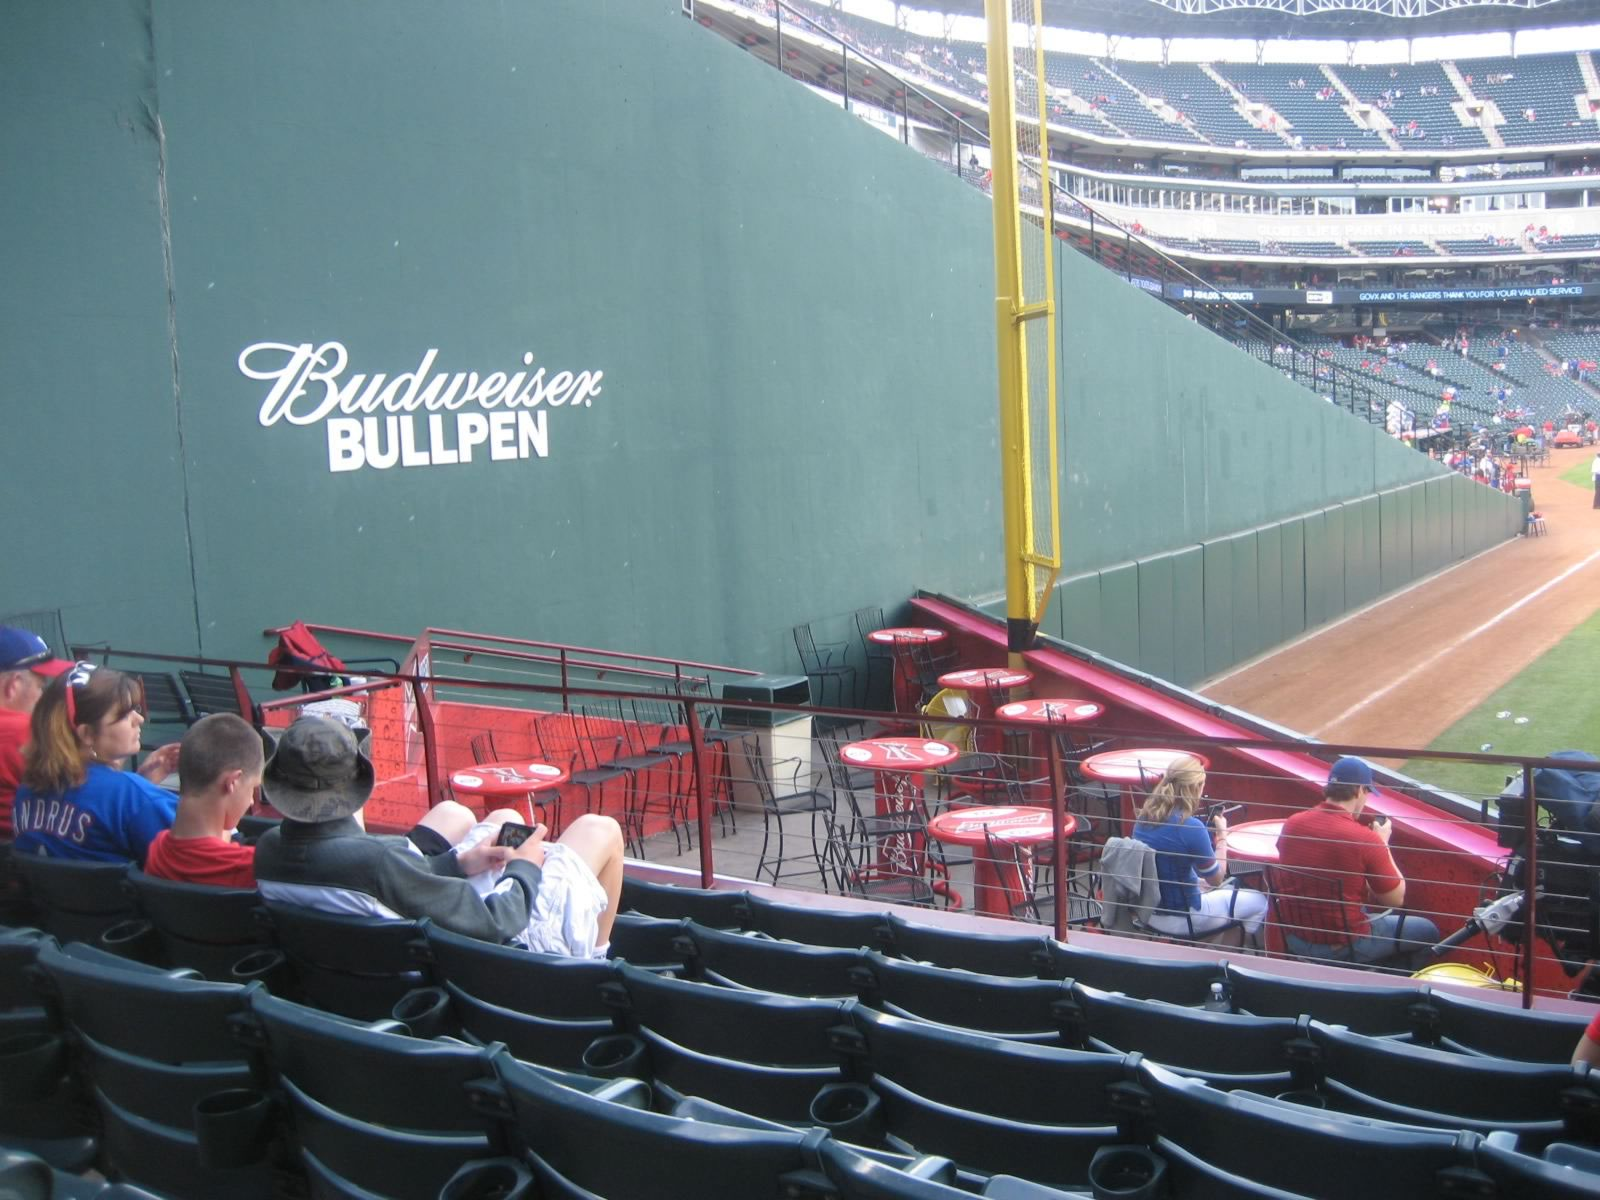 Picture looking into the Budweiser Bullpen